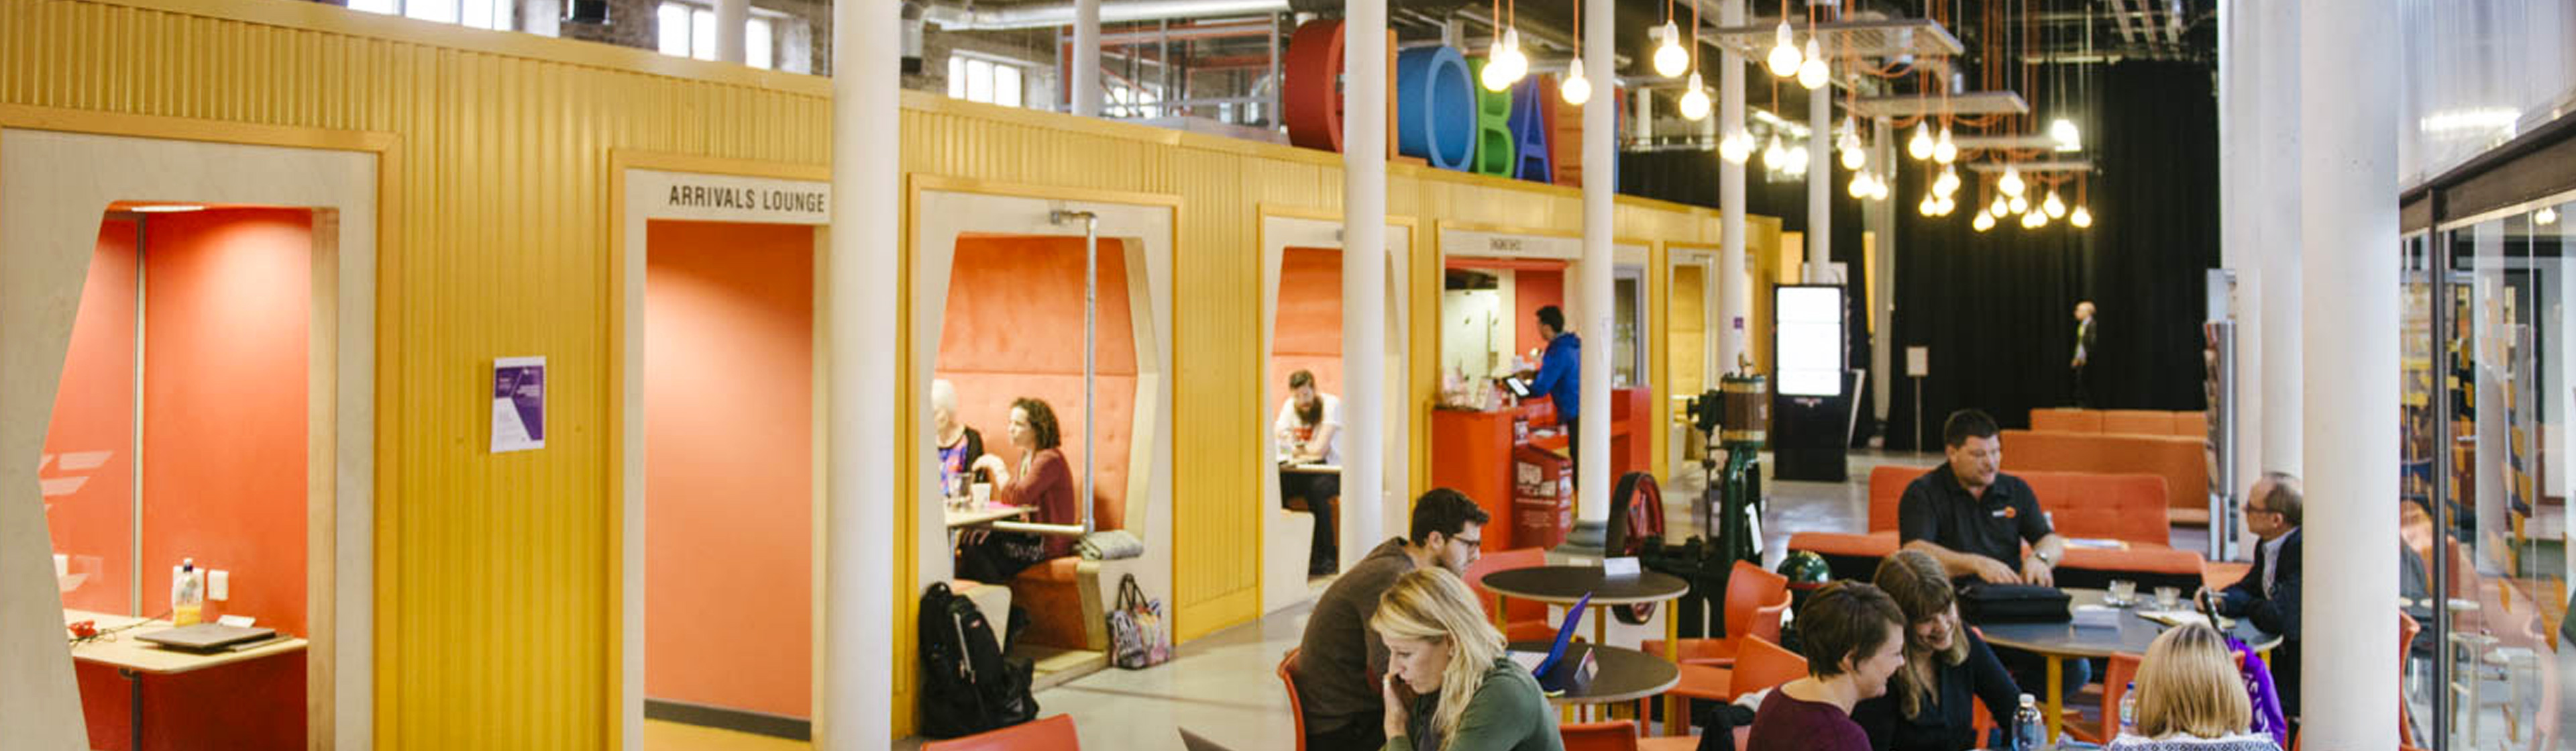 Engineshed, image copyright Candour Creative